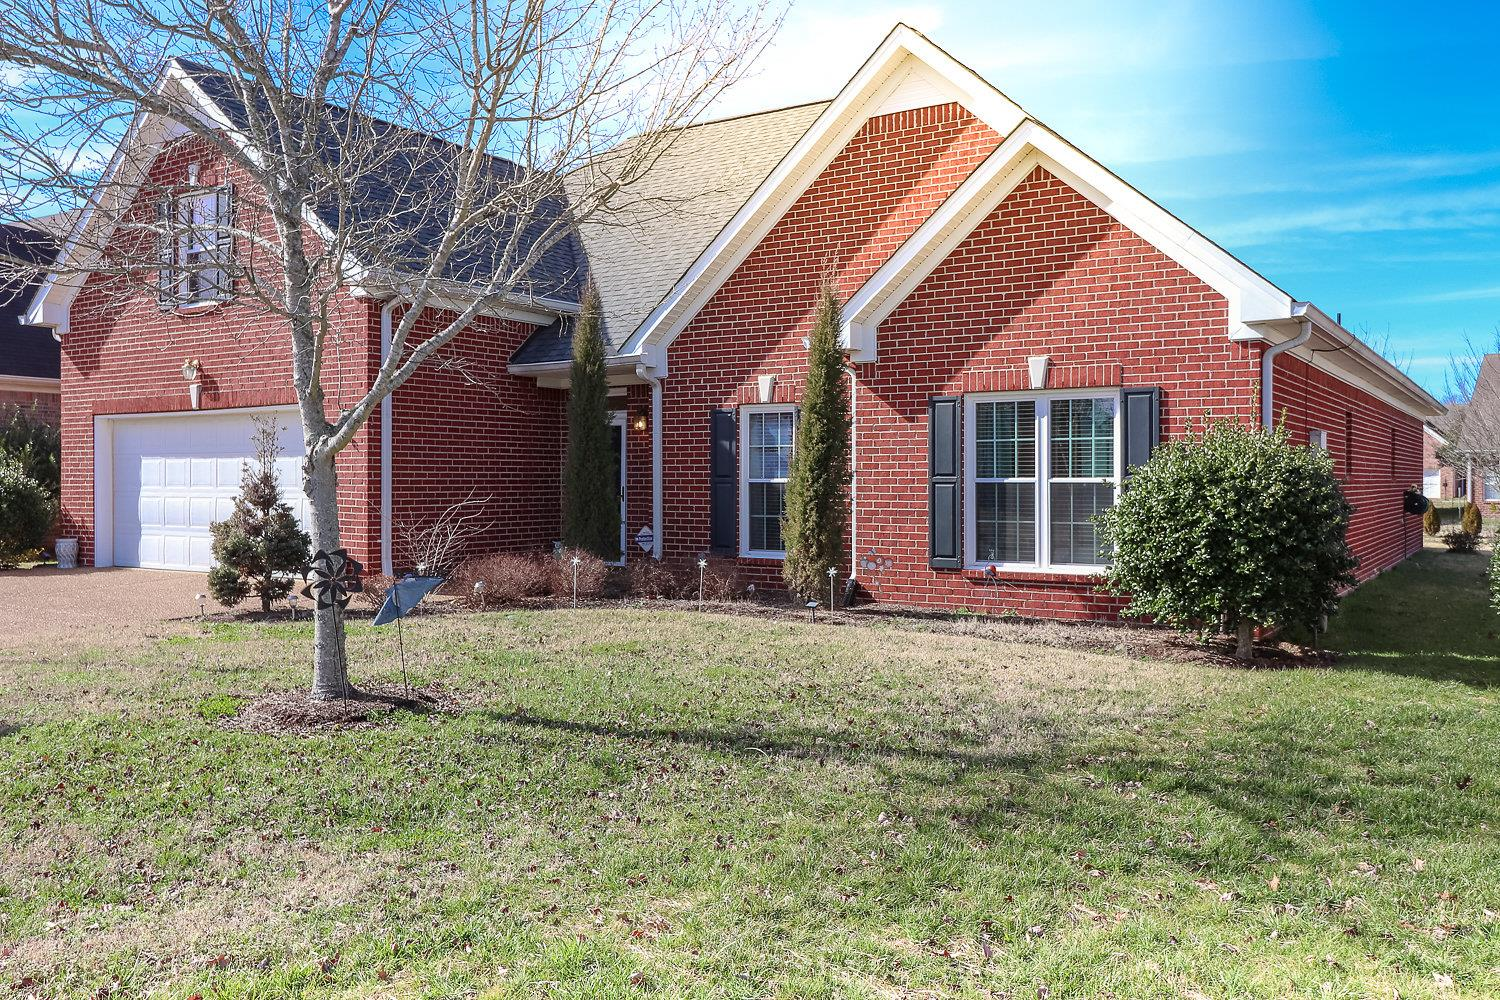 1012 Morrisey Ct, Bellevue in Davidson County County, TN 37221 Home for Sale